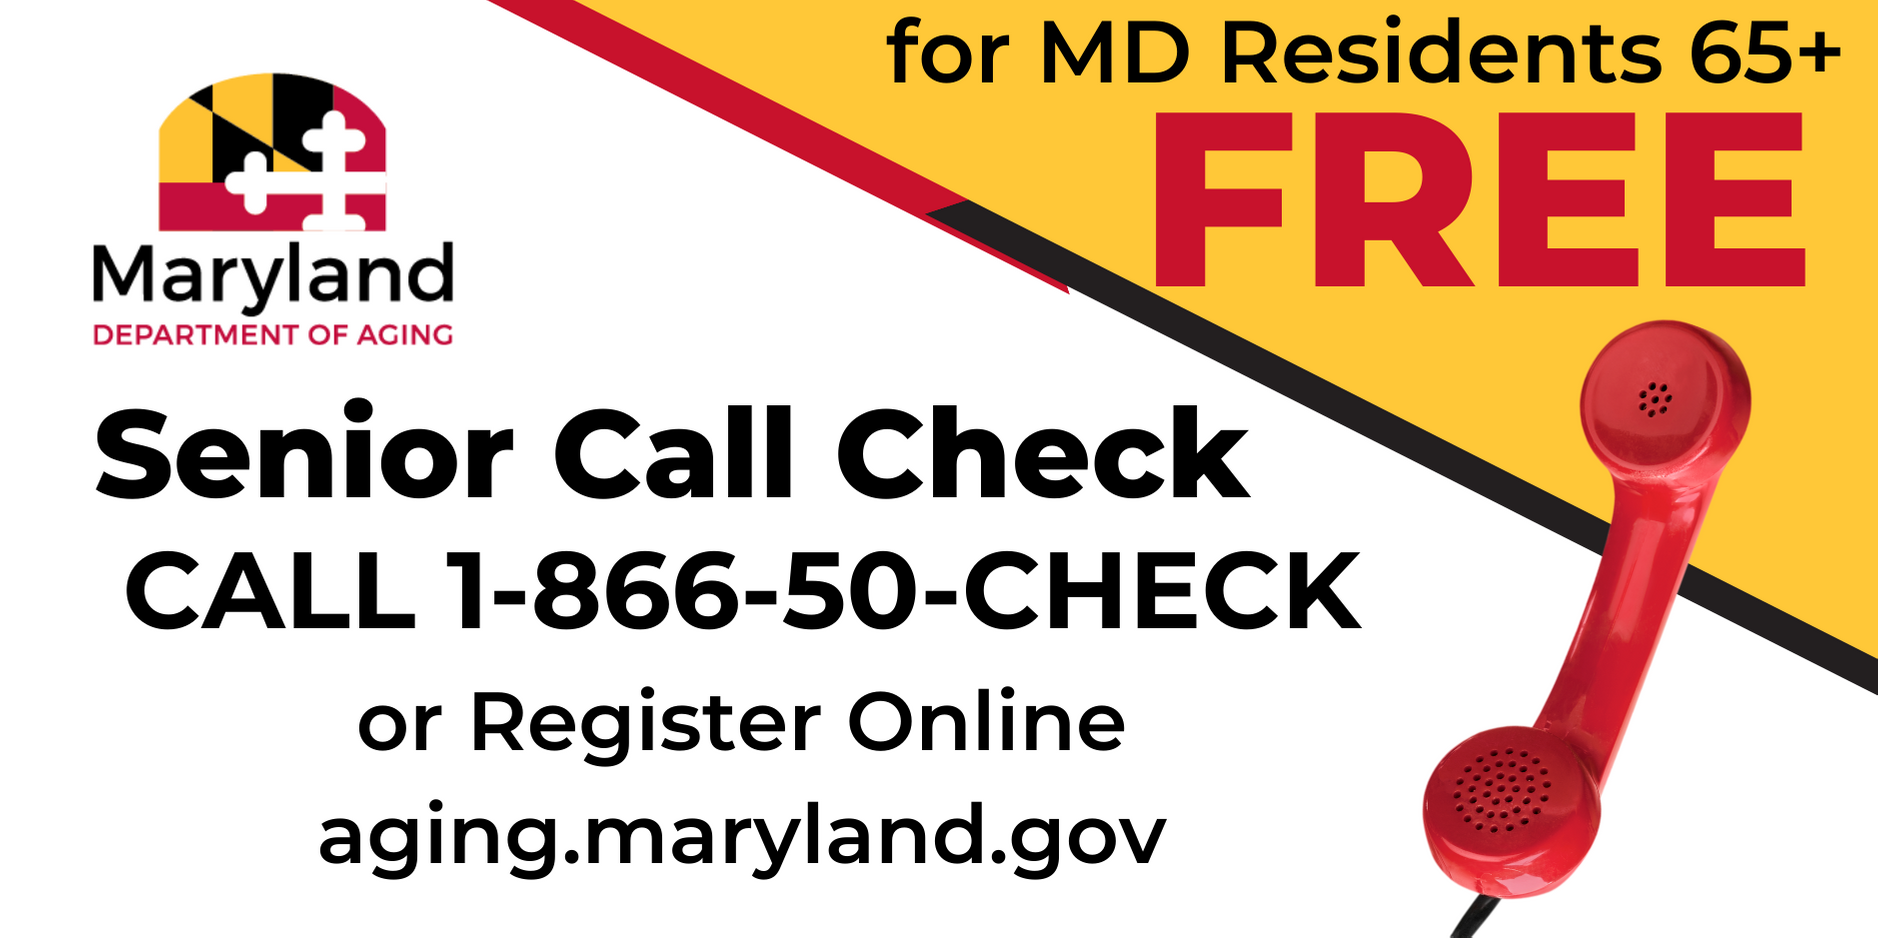 For MD Residents 65+ Free Senior Call Check Call 1-866-50-CHECK or register aging.maryland.gov